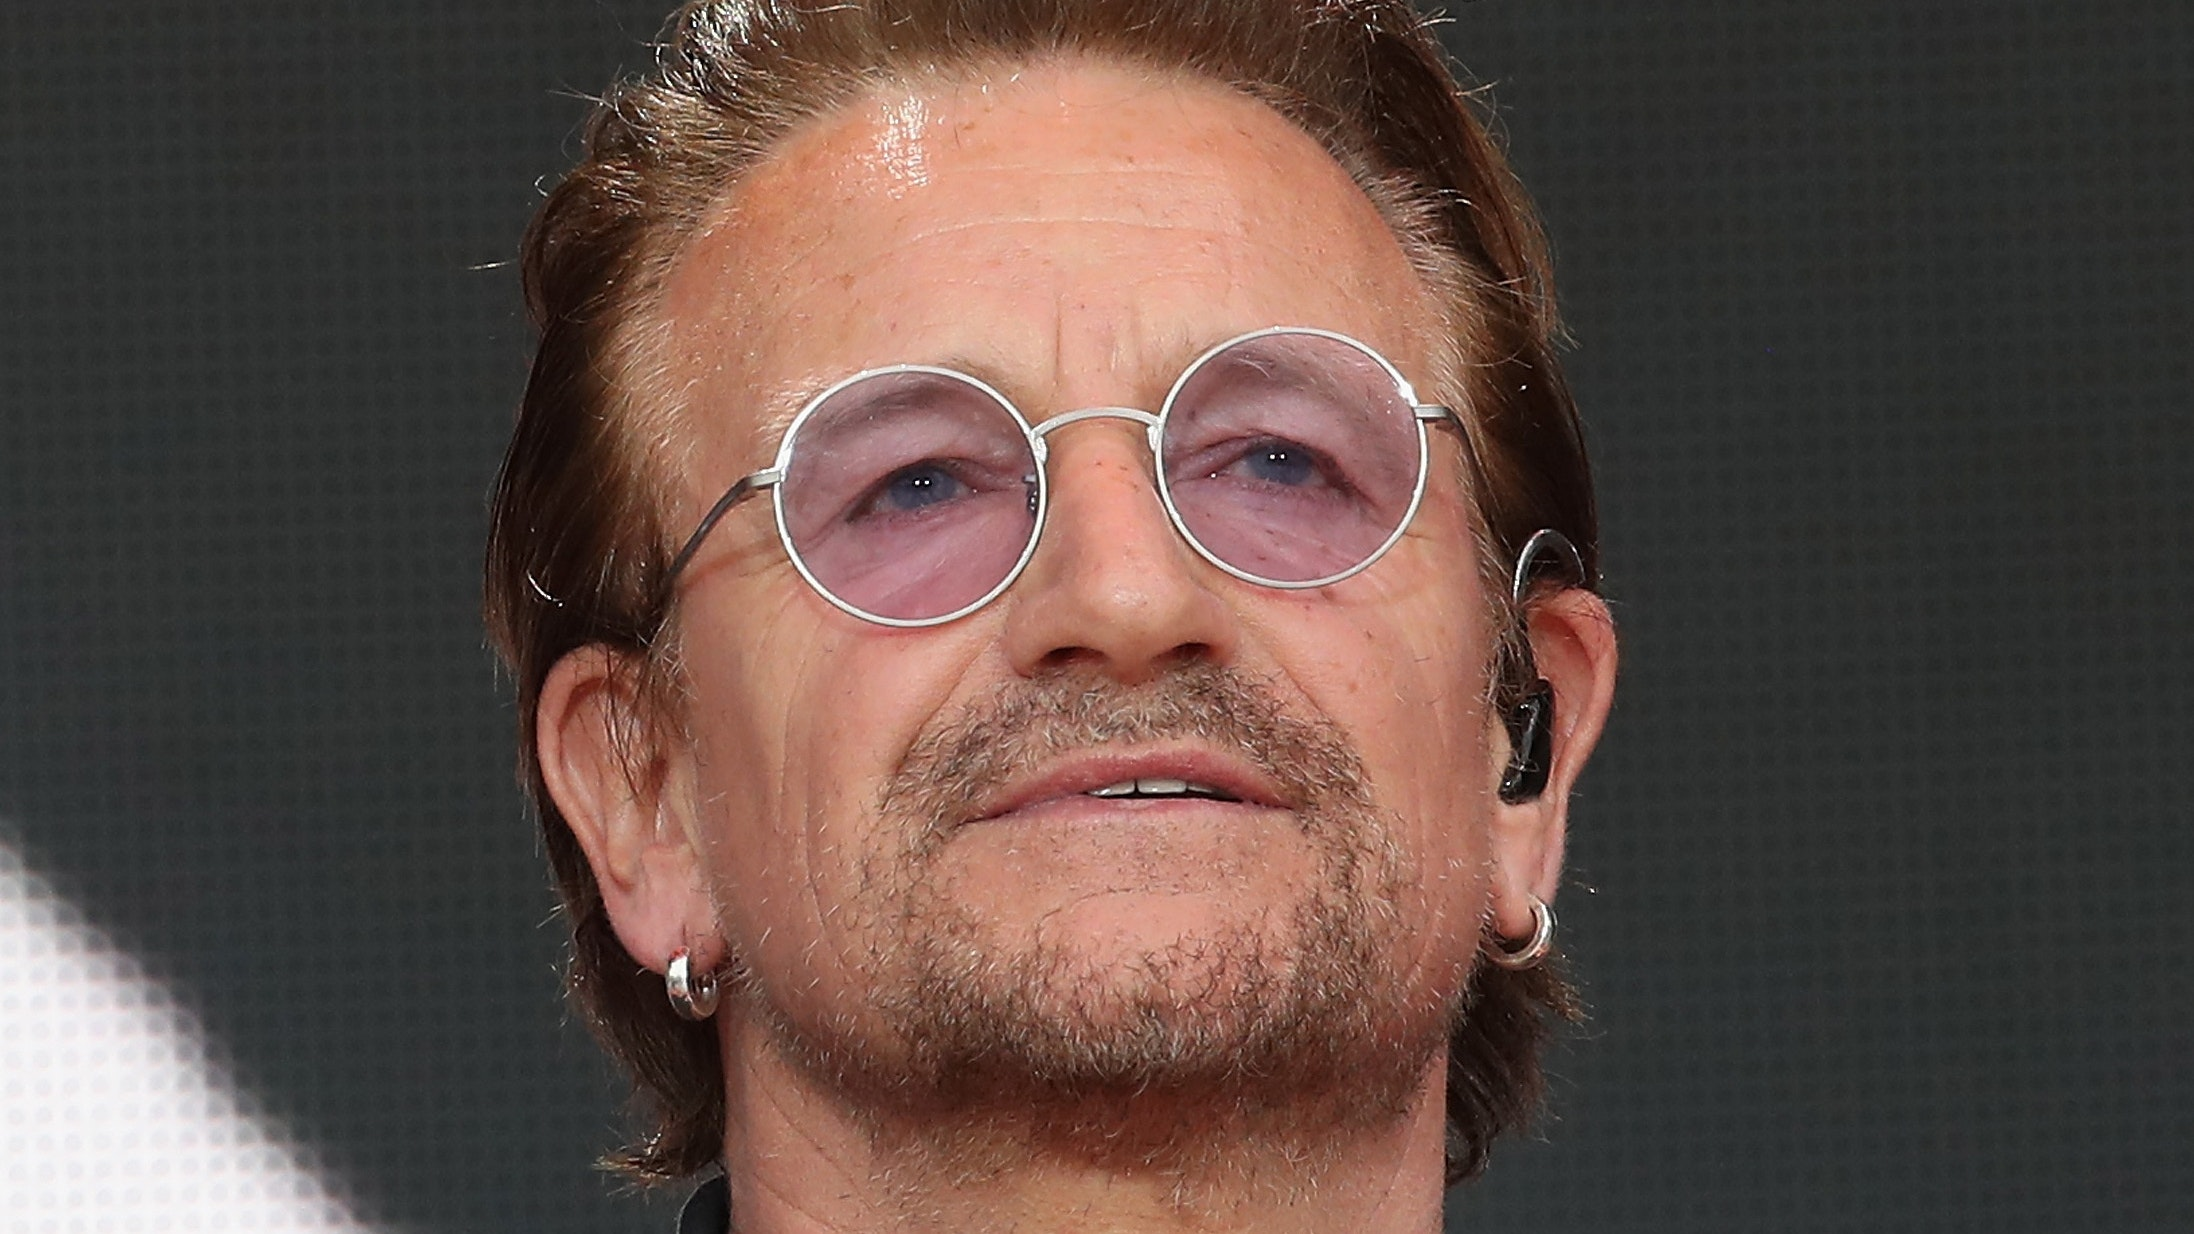 Internal Investigation Into Bono's One Campaign Finds Pattern Of Misconduct, Abuse